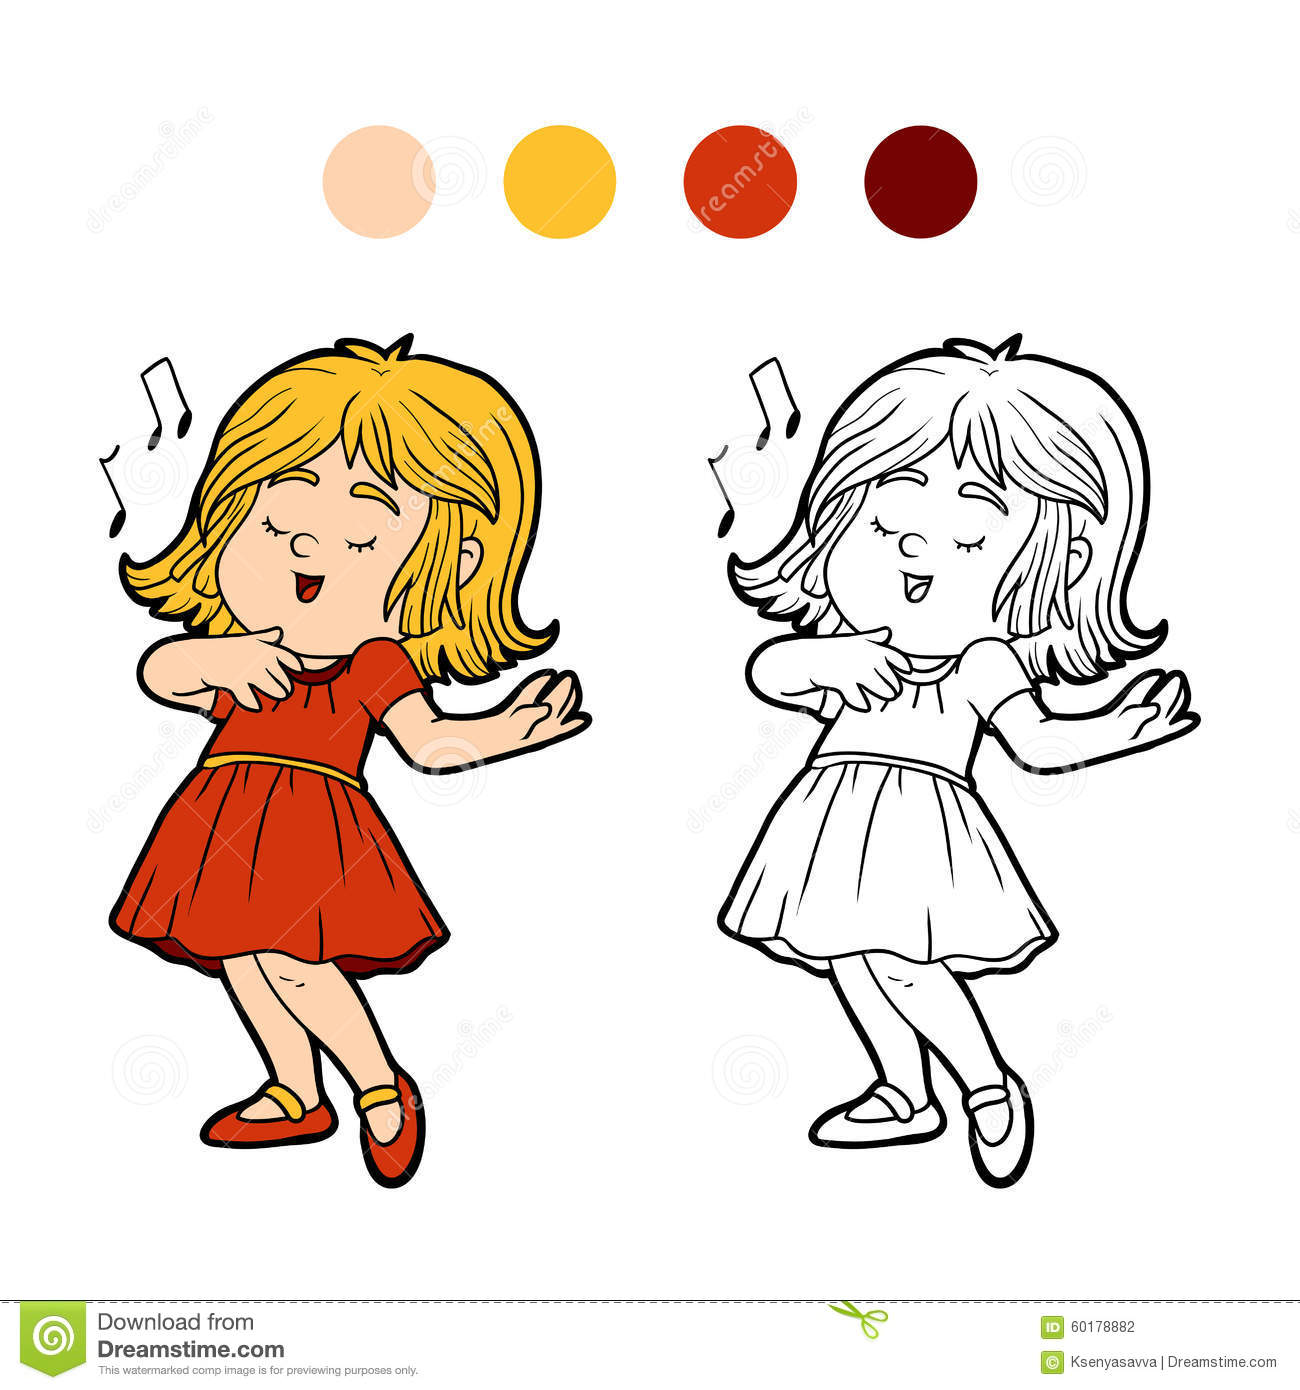 livre de coloriage la petite fille dans une robe rouge chante une chanson illustration de. Black Bedroom Furniture Sets. Home Design Ideas